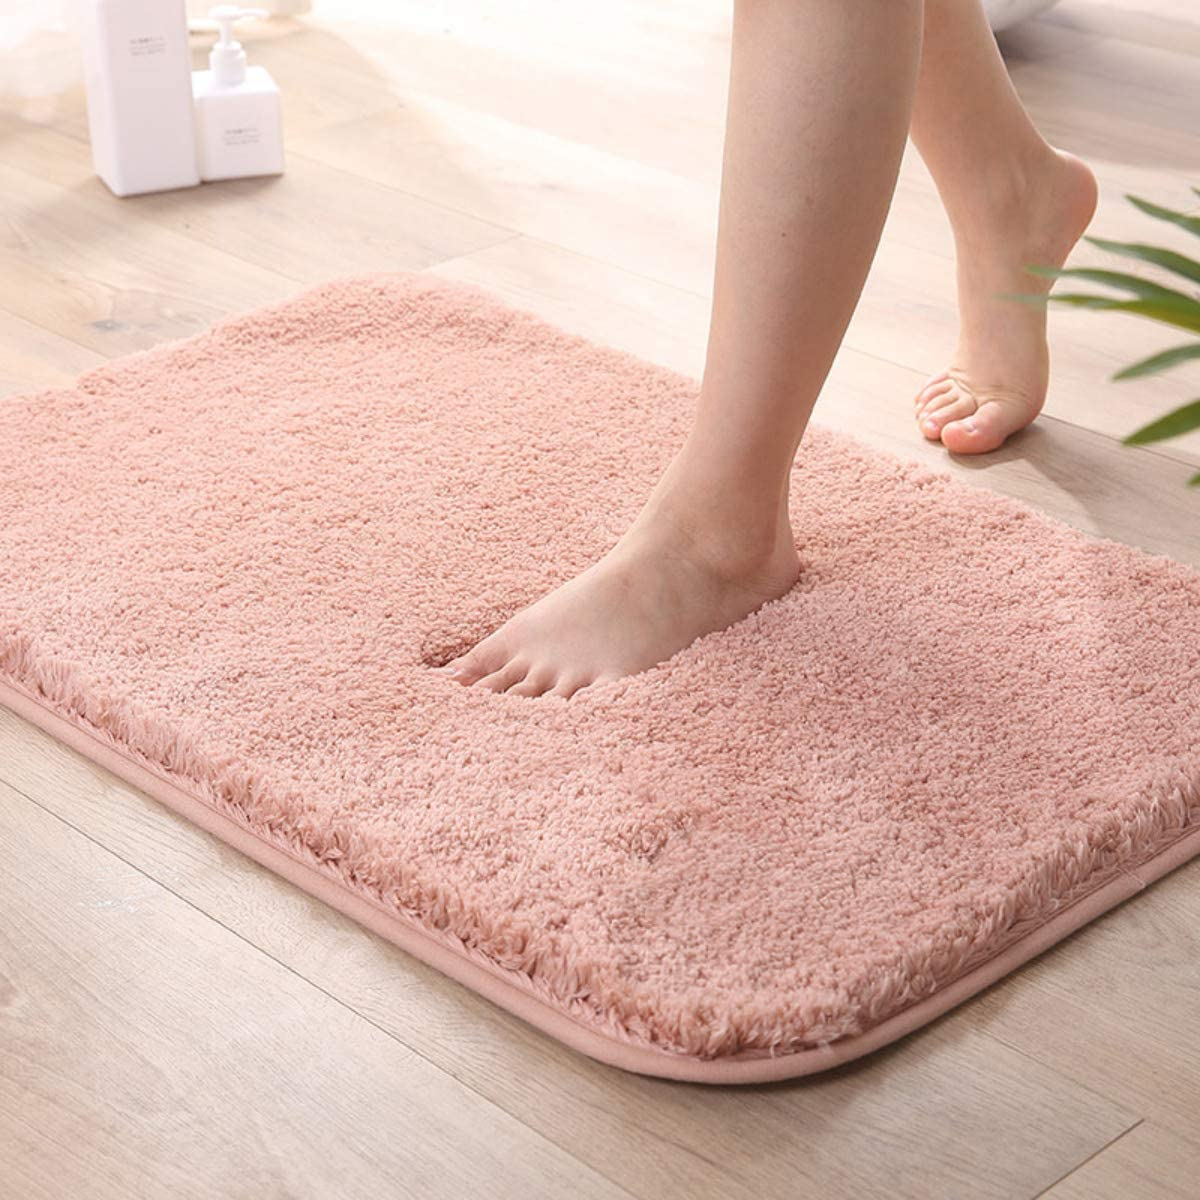 Fufengz Bathroom Carpet Mats, Super Soft and Absorbent Bathroom Carpets, Machine Wash/Dry Clothes, for Bathtubs, Showers and Bathrooms (36 24, Pink)